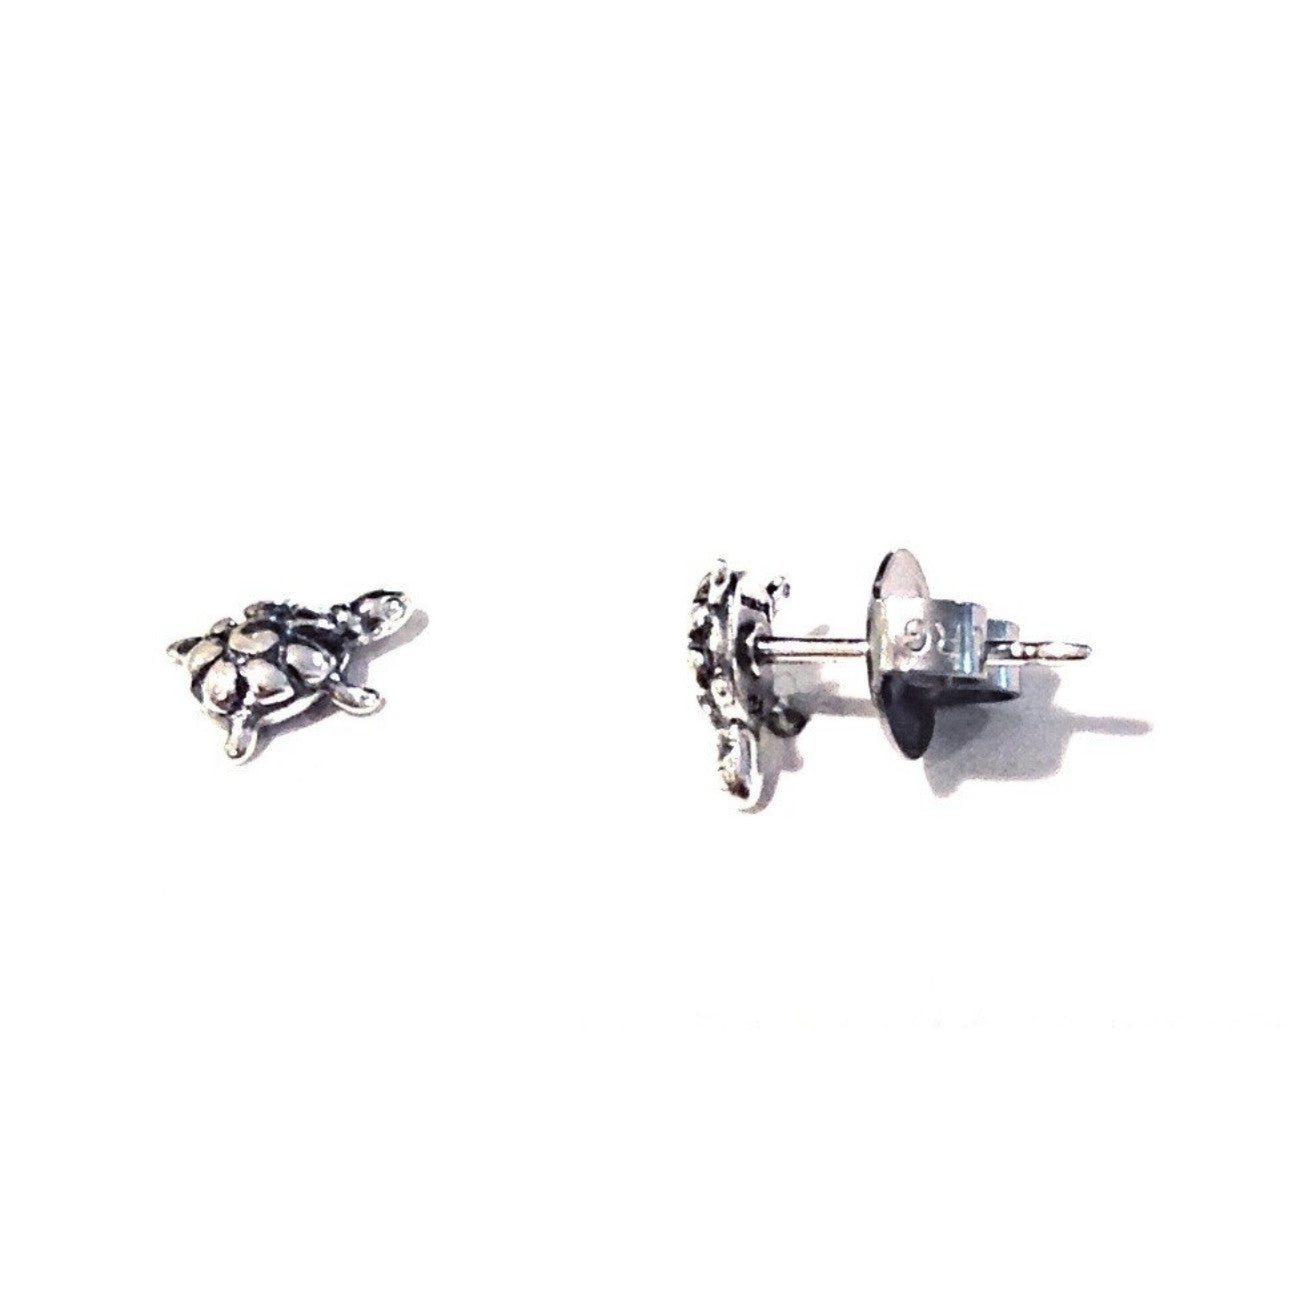 Small Turtle Posts, $10 | Sterling Silver Stud Earrings | Light Years Jewelry